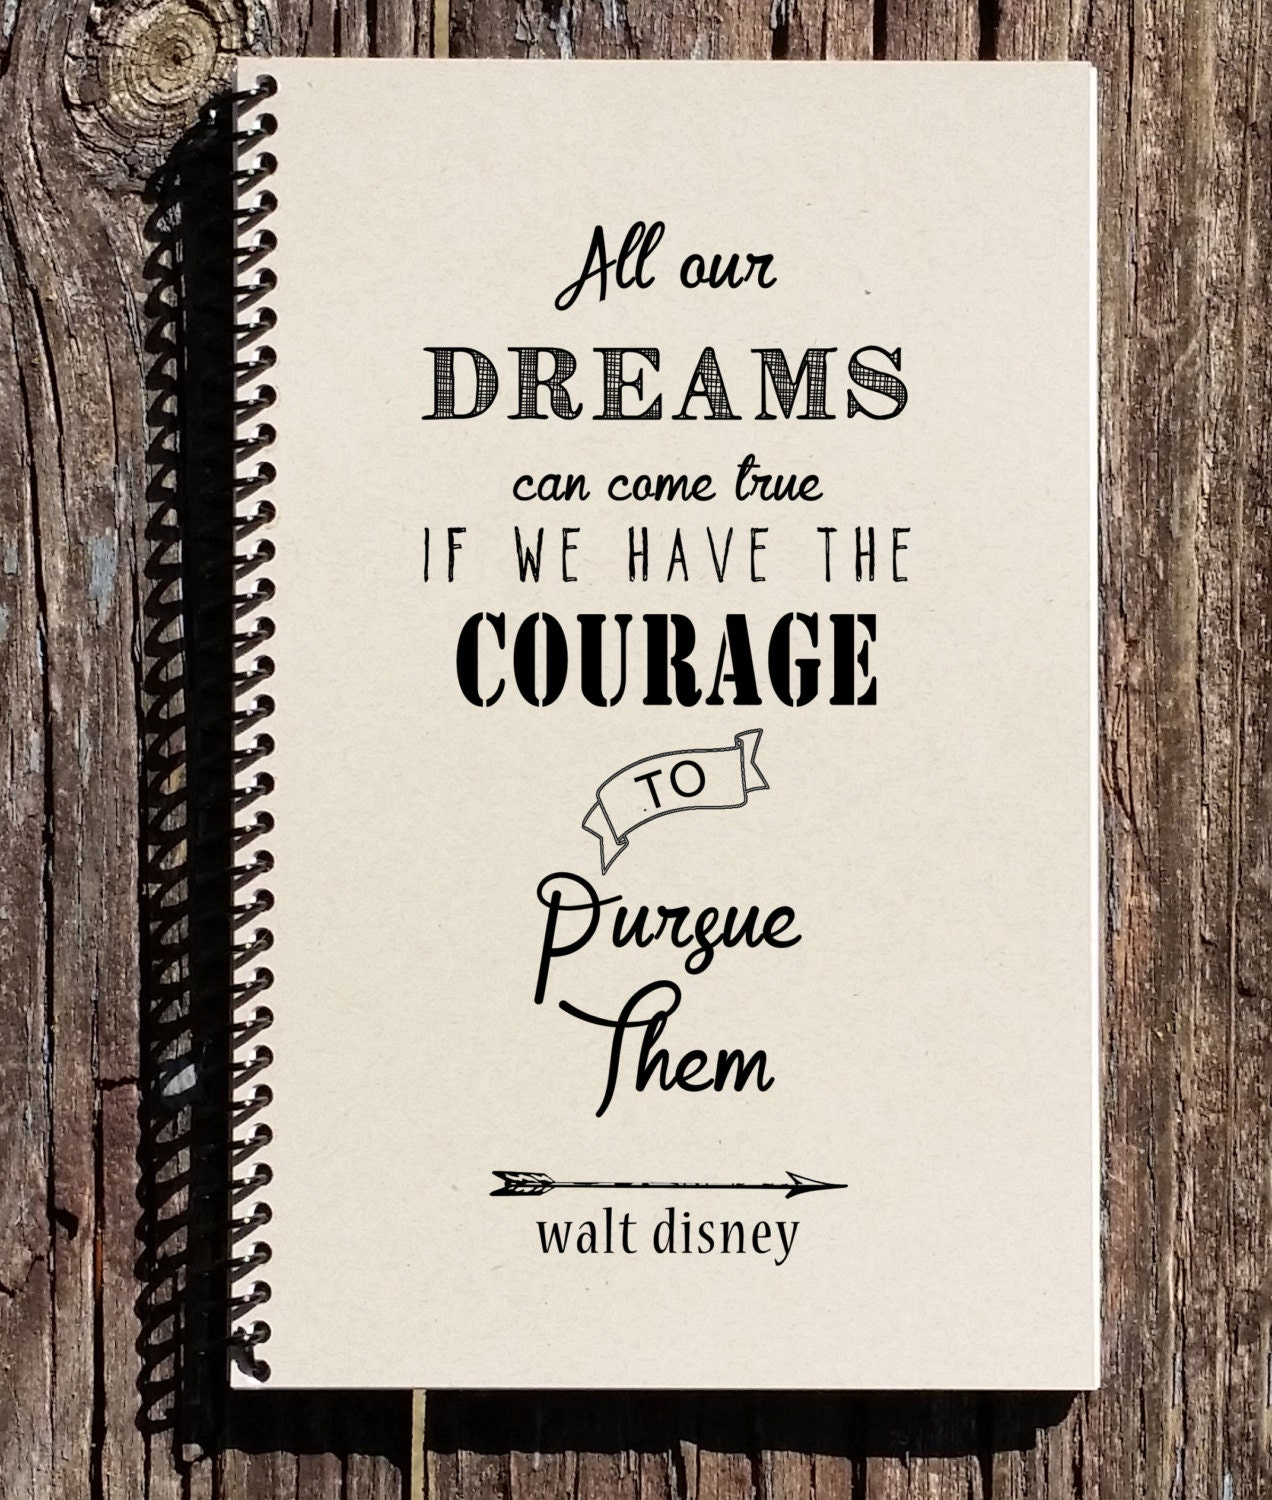 Quotes Journal Walt Disney Quote Disney Notebook All Our Dreams Can Come